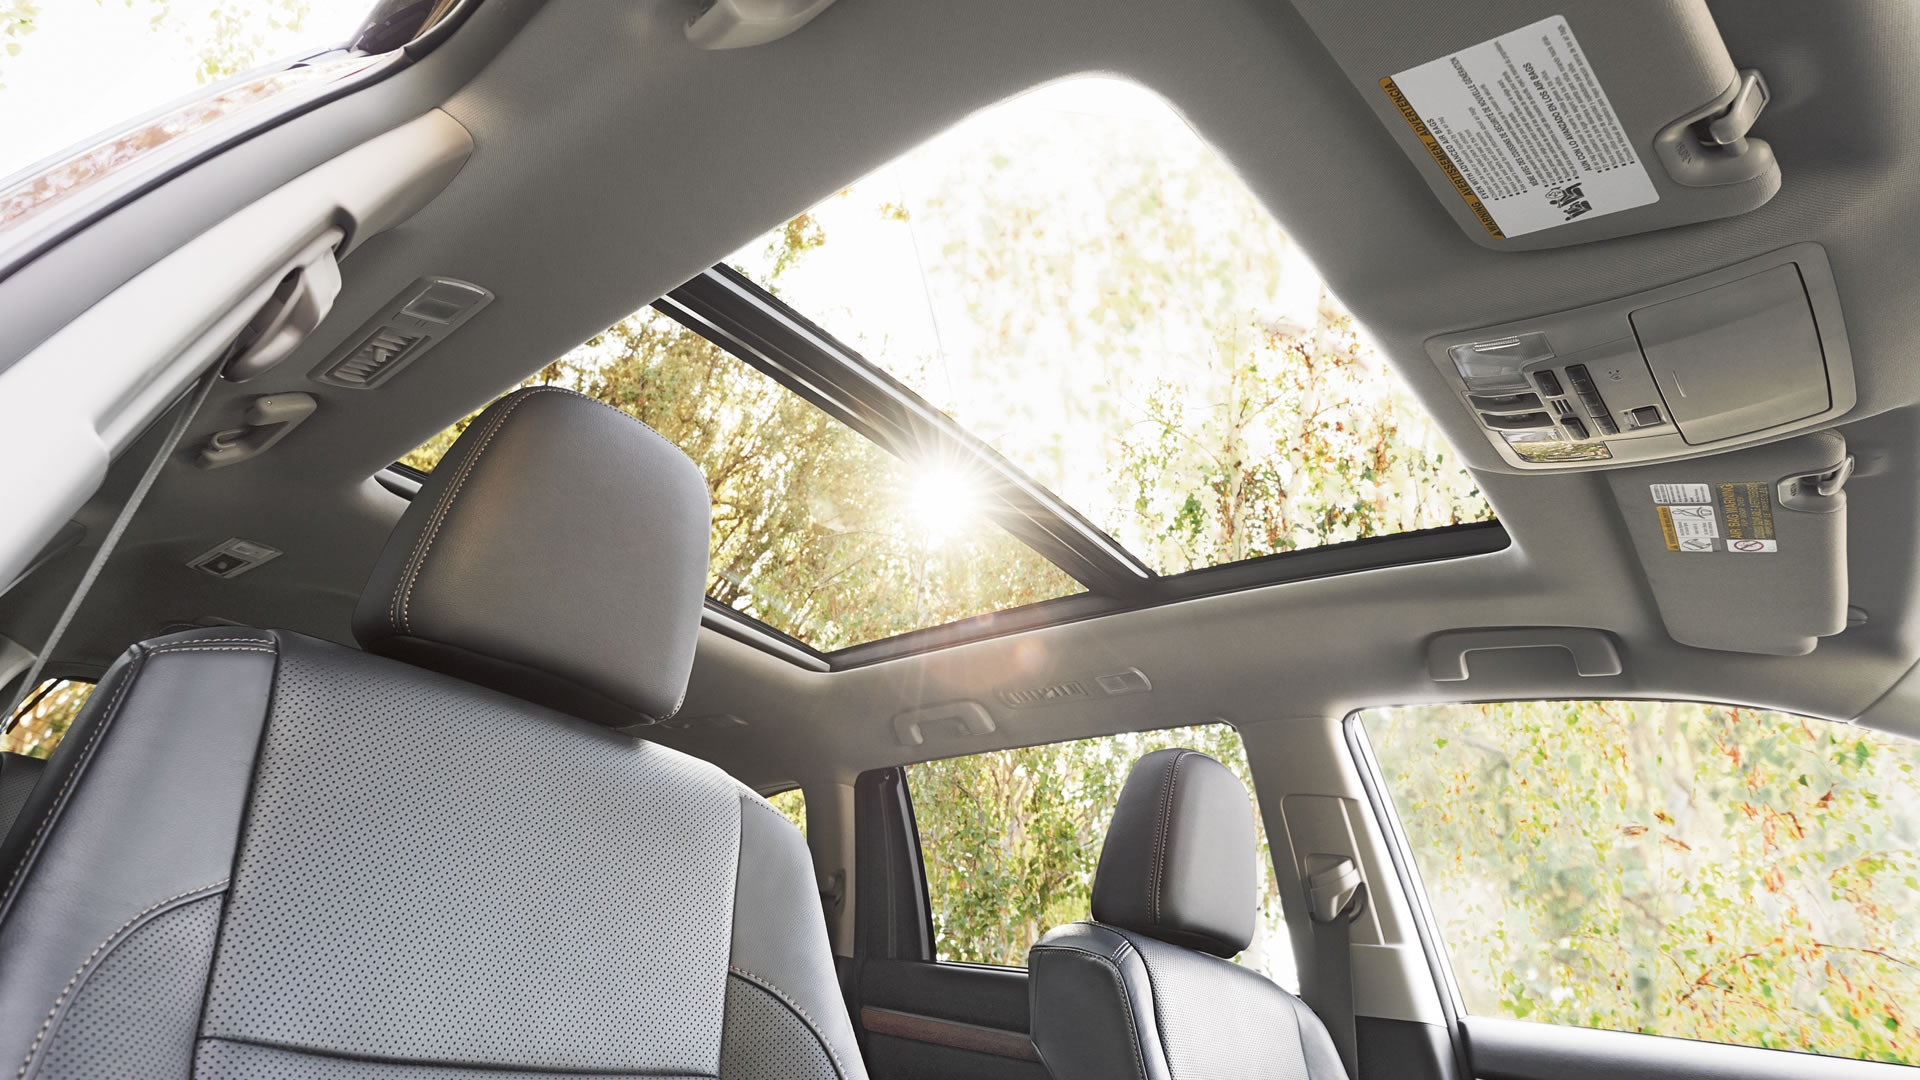 Sunroof in the 2019 Highlander